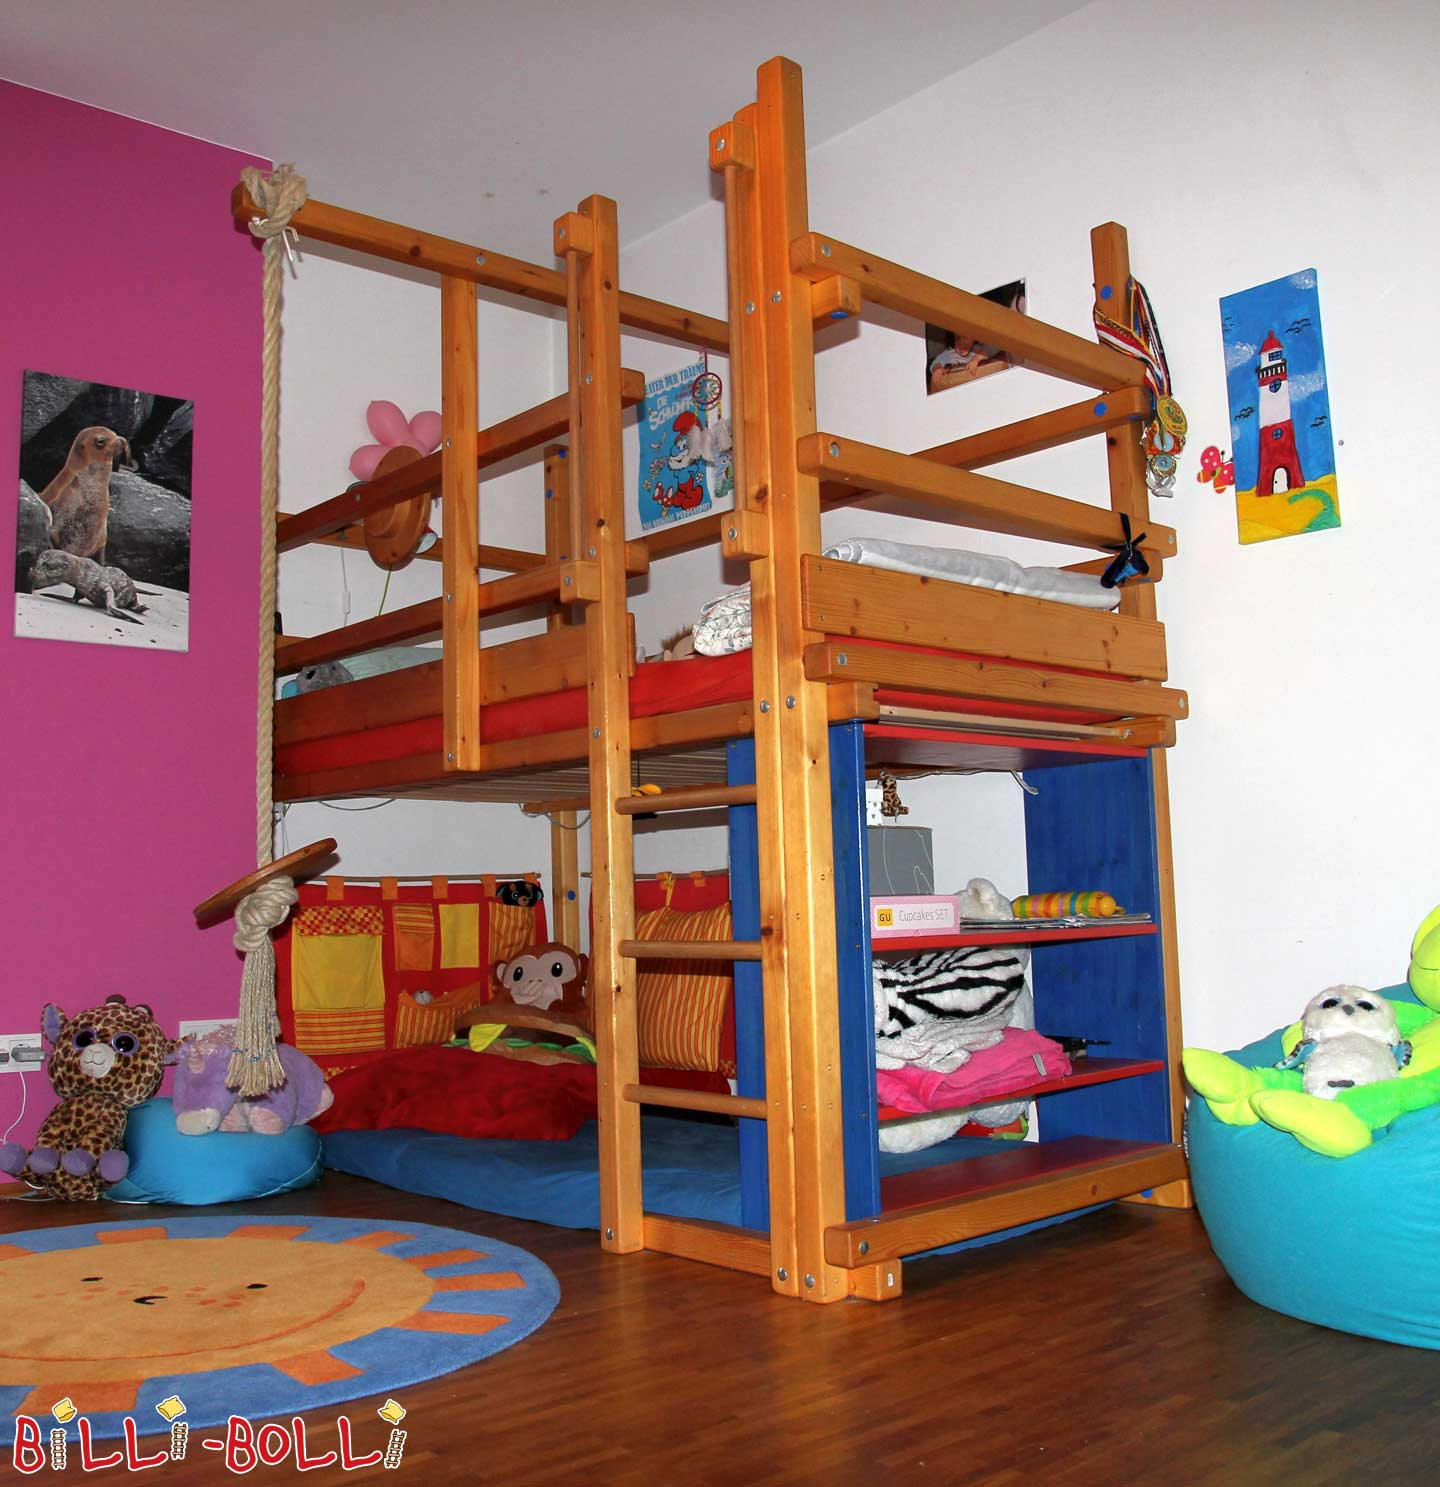 Billi Bolli spruce high bed (second hand loft bed)